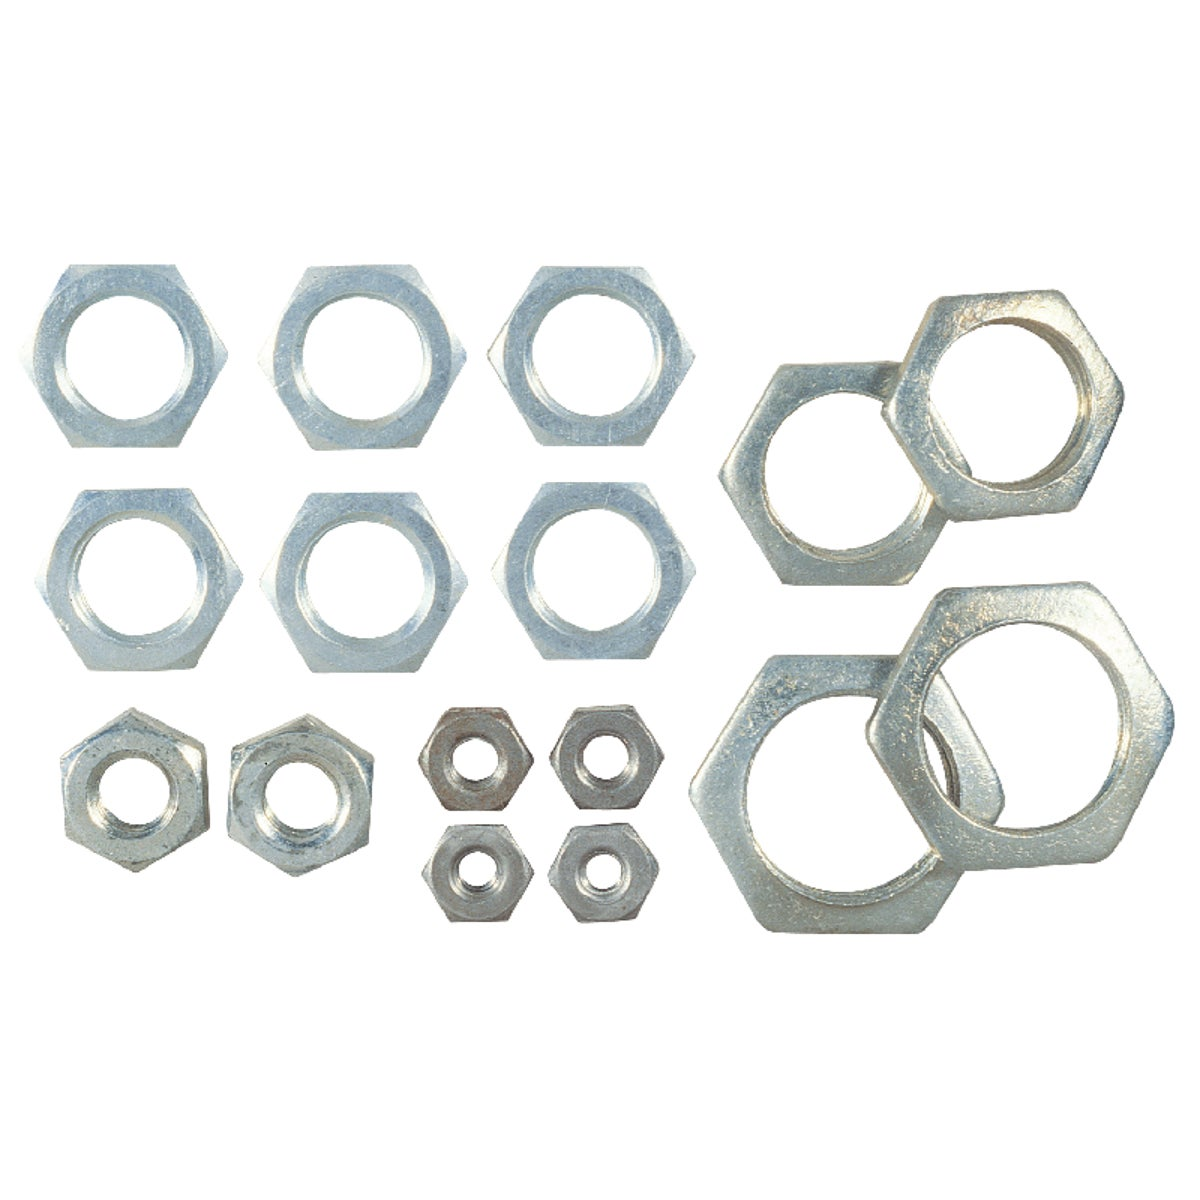 ASSORTED STEEL LOCKNUTS - 70152 by Westinghouse Lightng